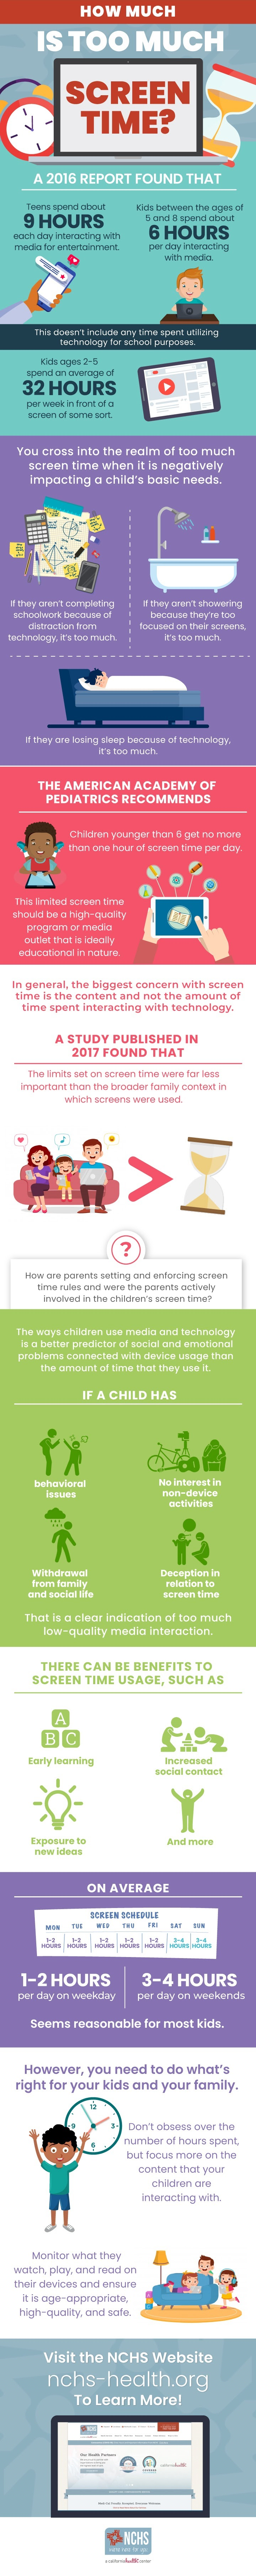 How Much Is Too Much Screen Time? #infographic